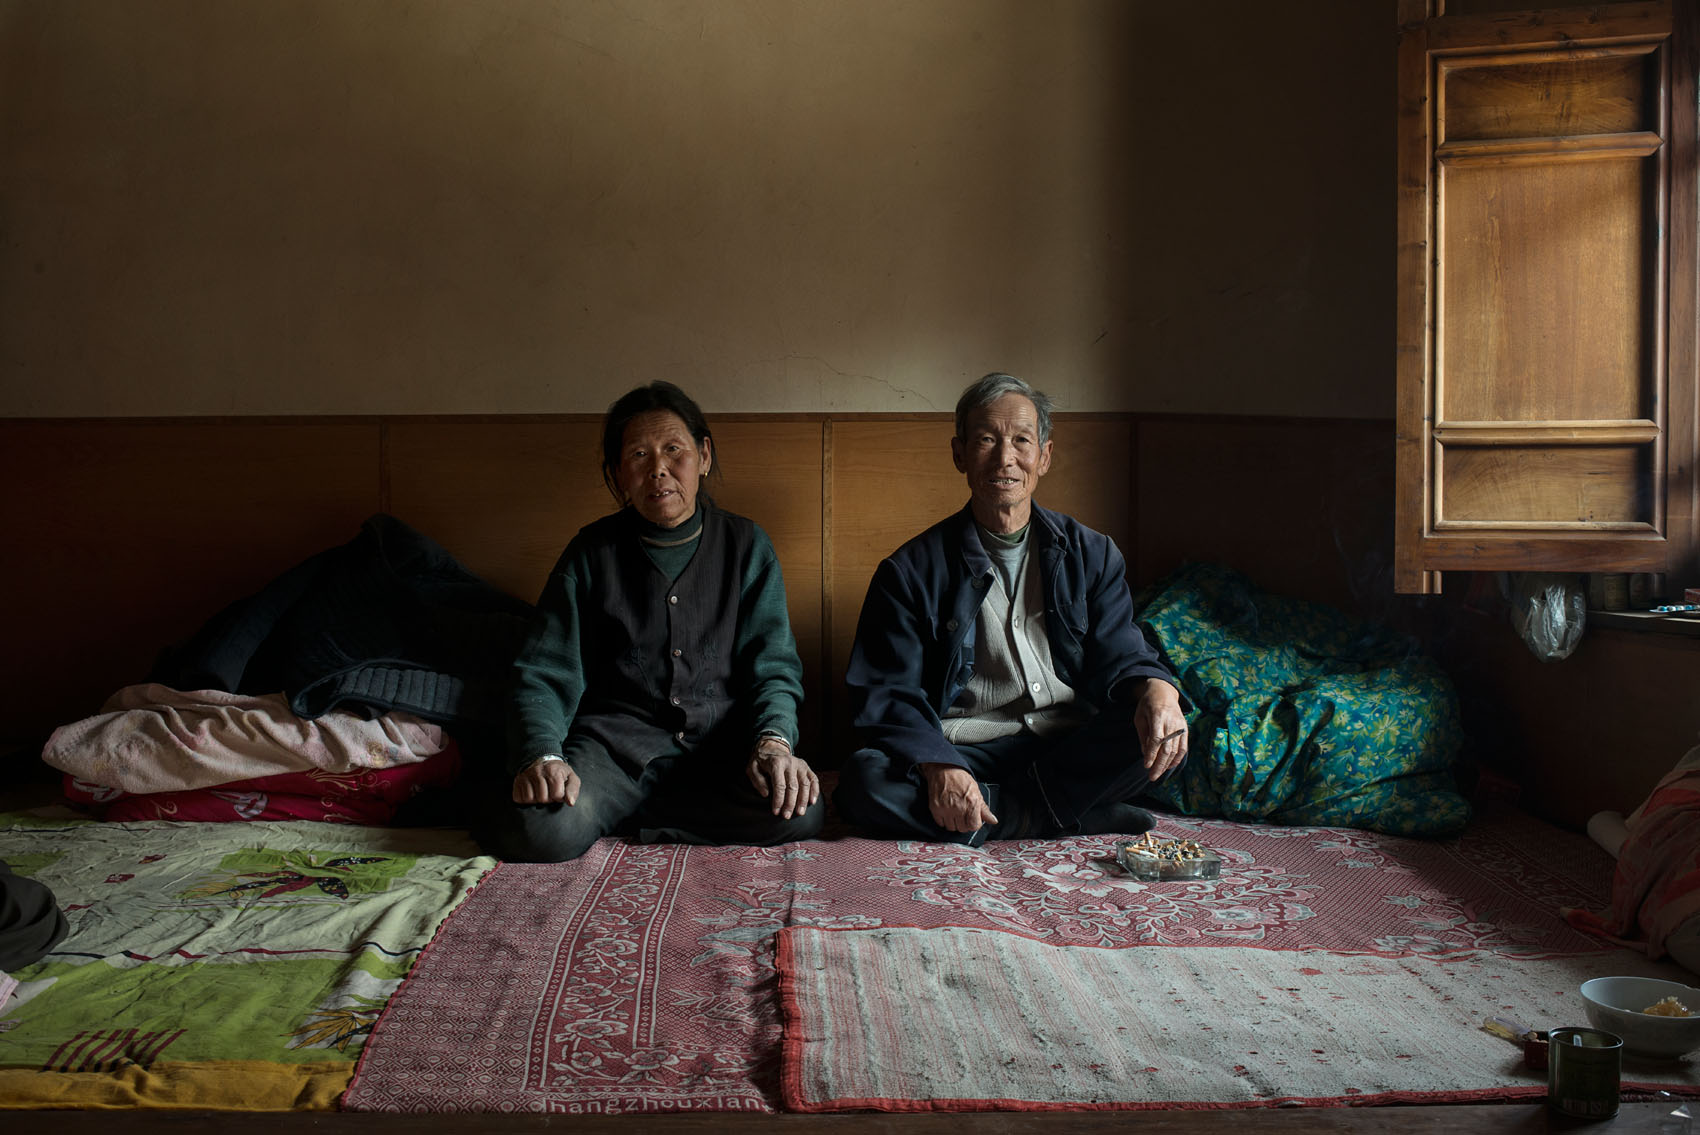 Yujiaping Village Yu Zhanglai (67) with his wife Dong Juming (67).  60% of the population of Yu Jiaping has moved down to the new village but a new house costs 200K RMB (32,000 US$) and they can't afford to move. A new road has been built between the old and the new village. Each family contributed 1,000R RMB to the construction but they are too poor to contribute.